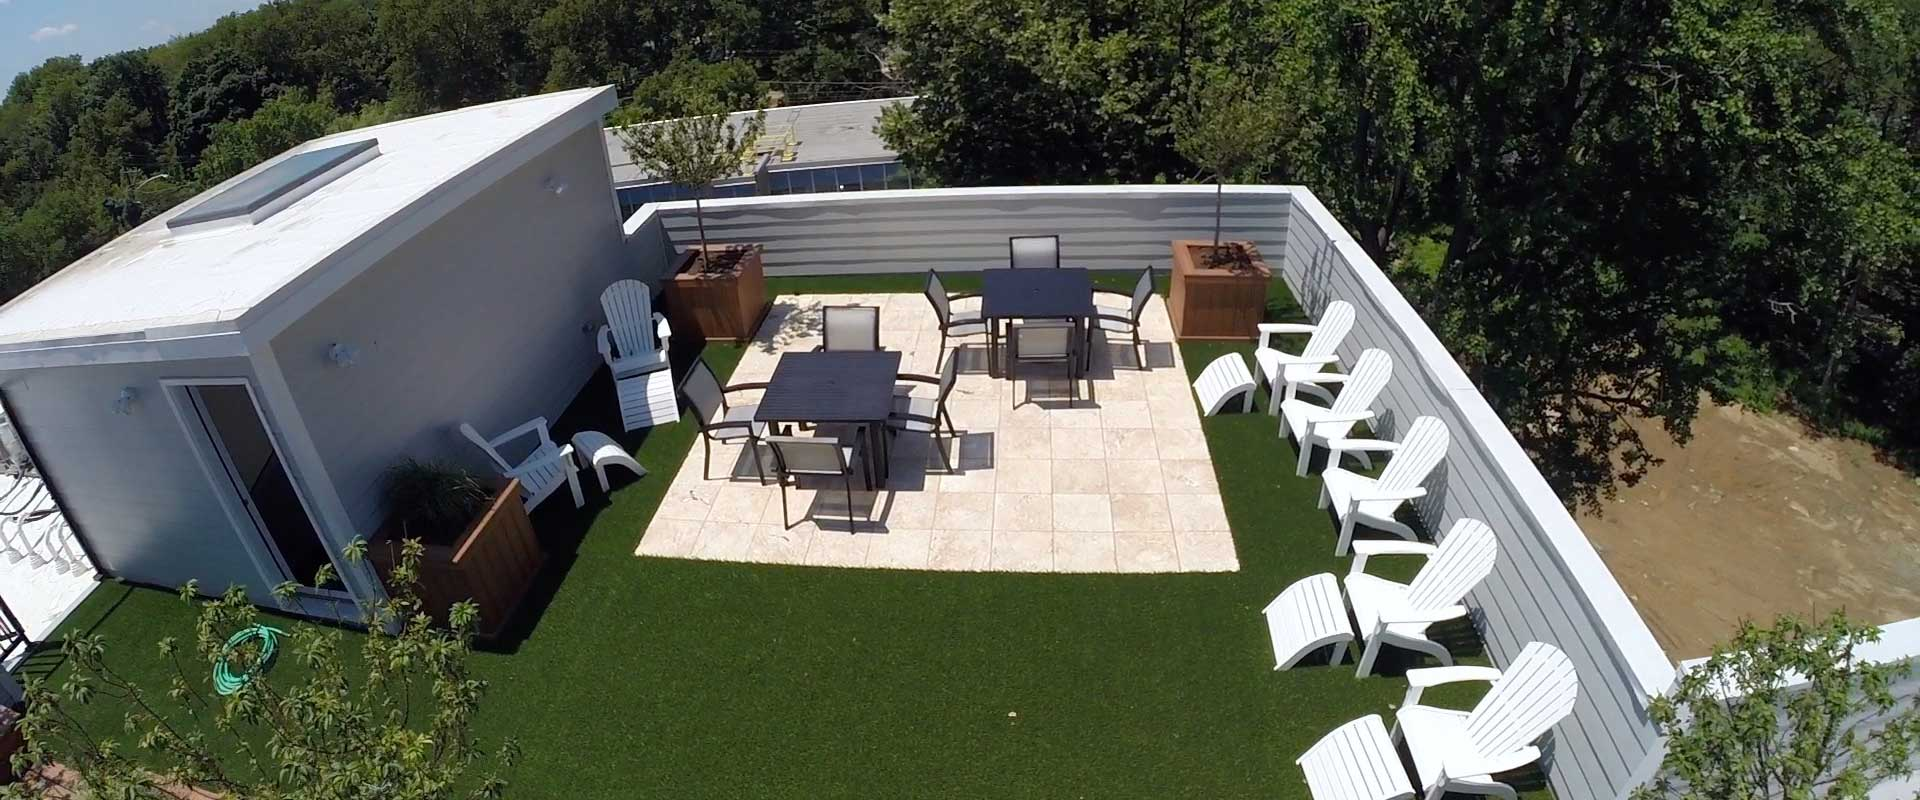 Install Artificial Grass For Your Roof Deck Amp Patio In